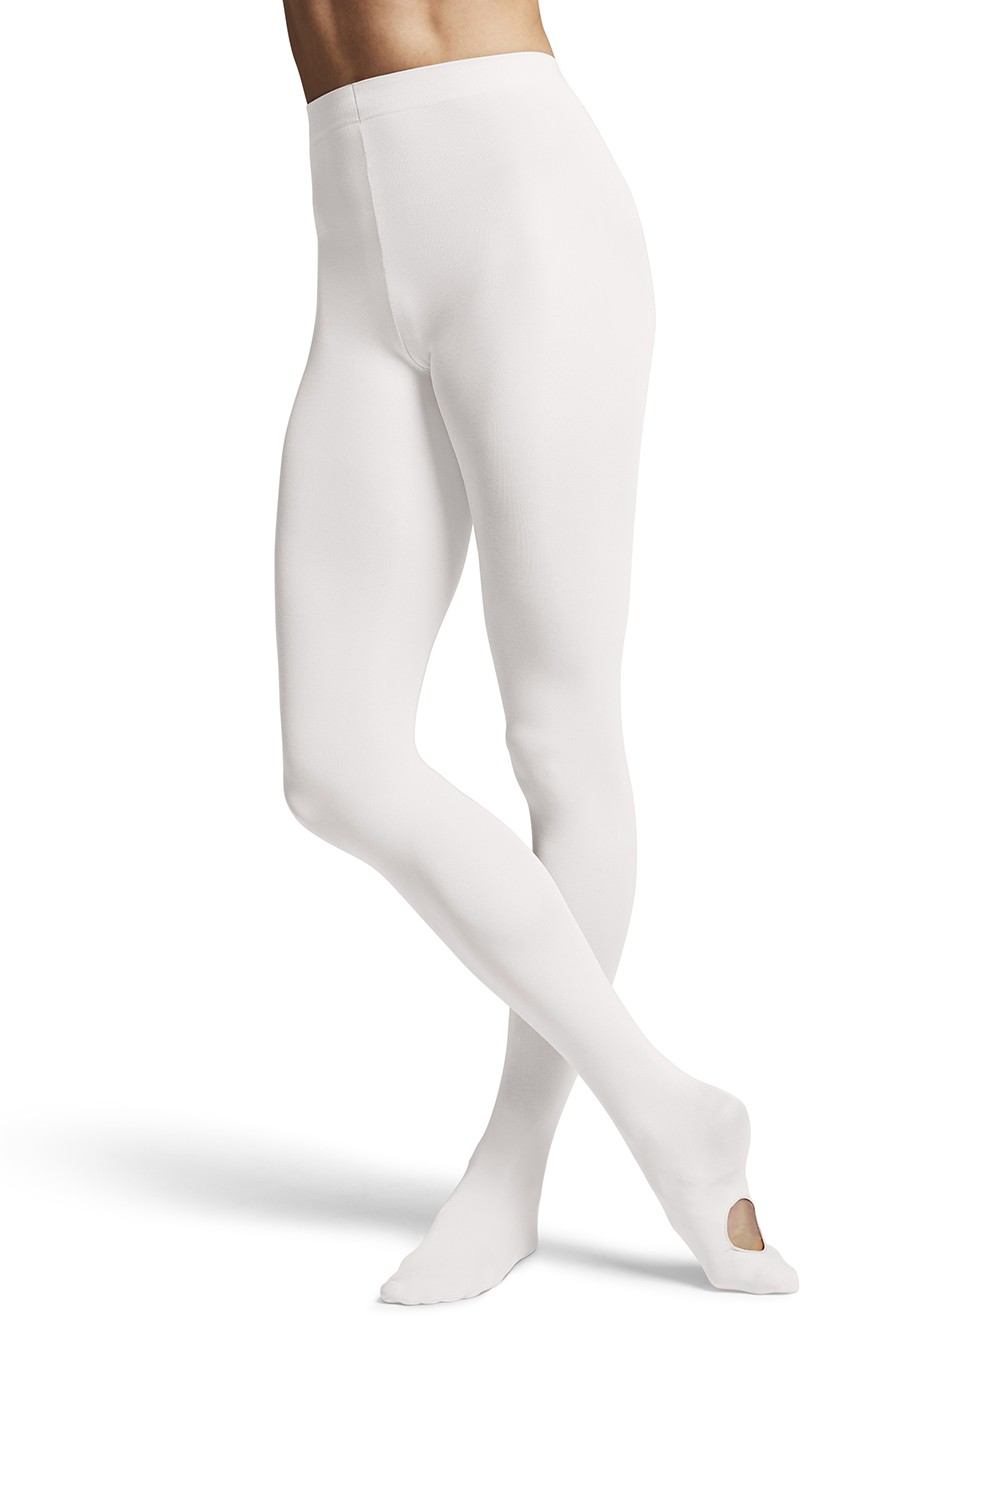 Girl's Contoursoft Adaptatoe Tights Children's Dance Tights